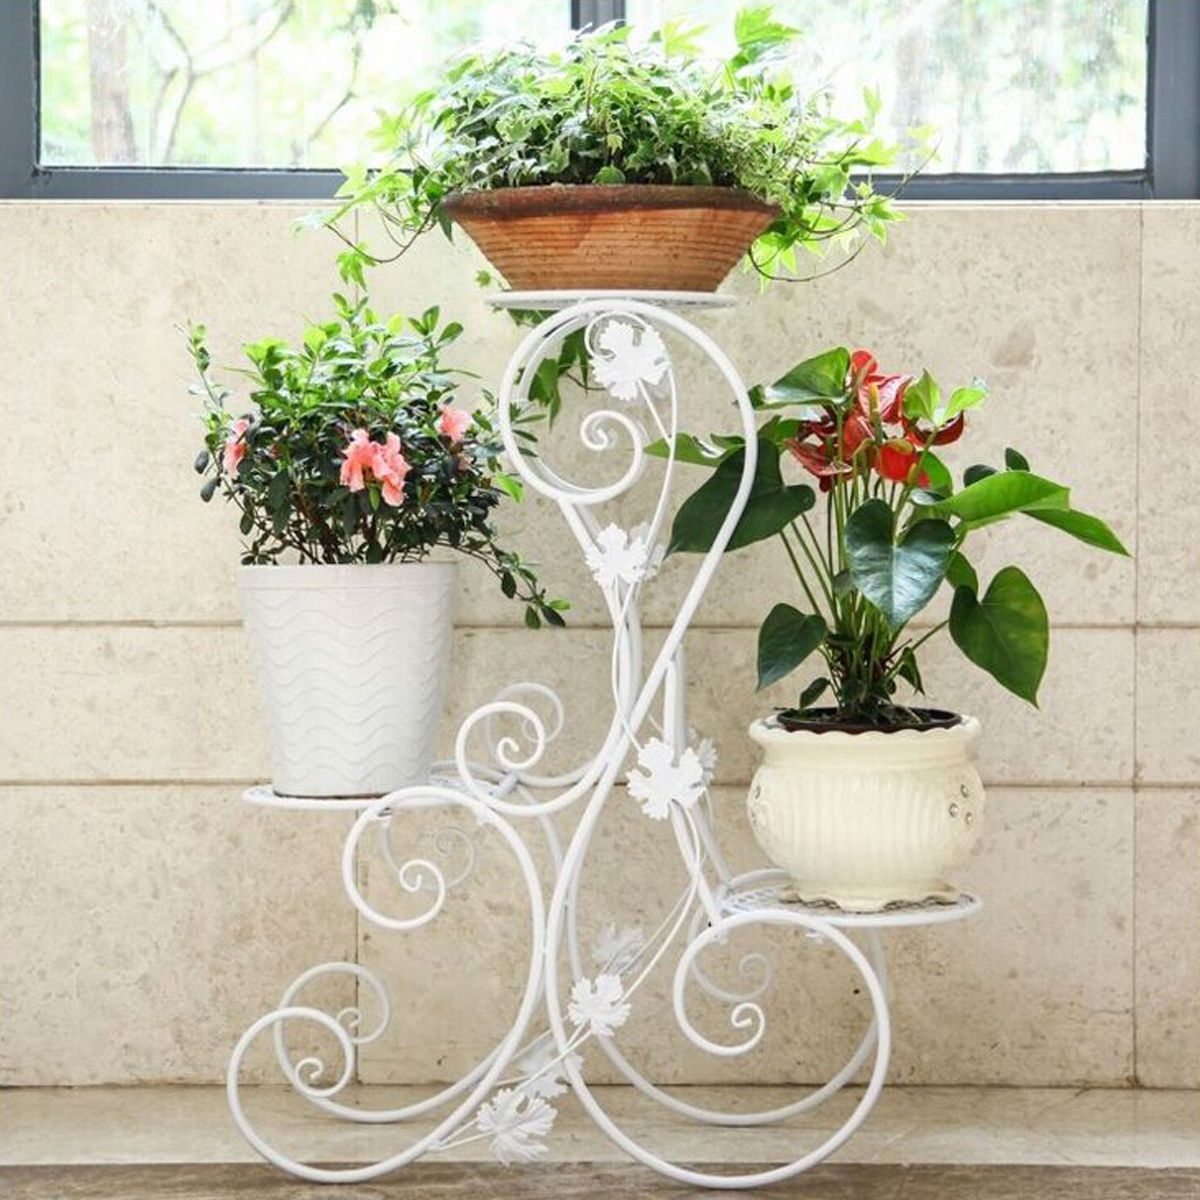 Green Metal Plant Stand 3 Tier S Design White Floor Standing Pot Plant Stand